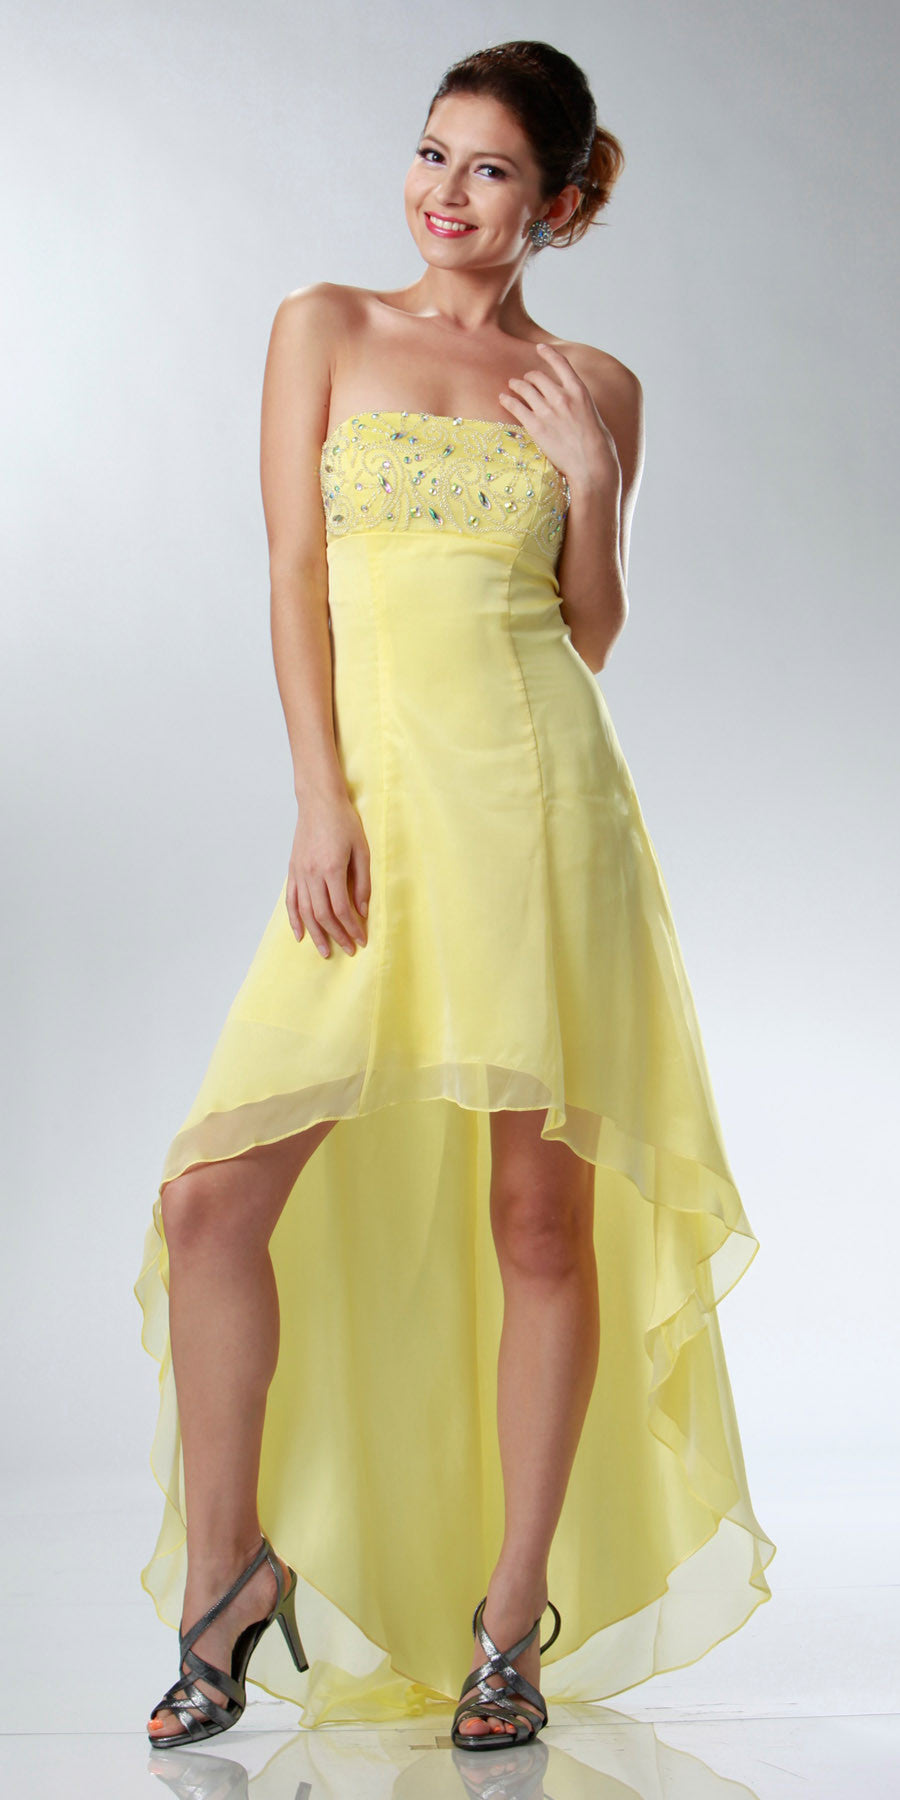 ON SPECIAL LIMITED STOCK - 2 Tone Chiffon Yellow High Low Formal Dress Strapless Beaded Top